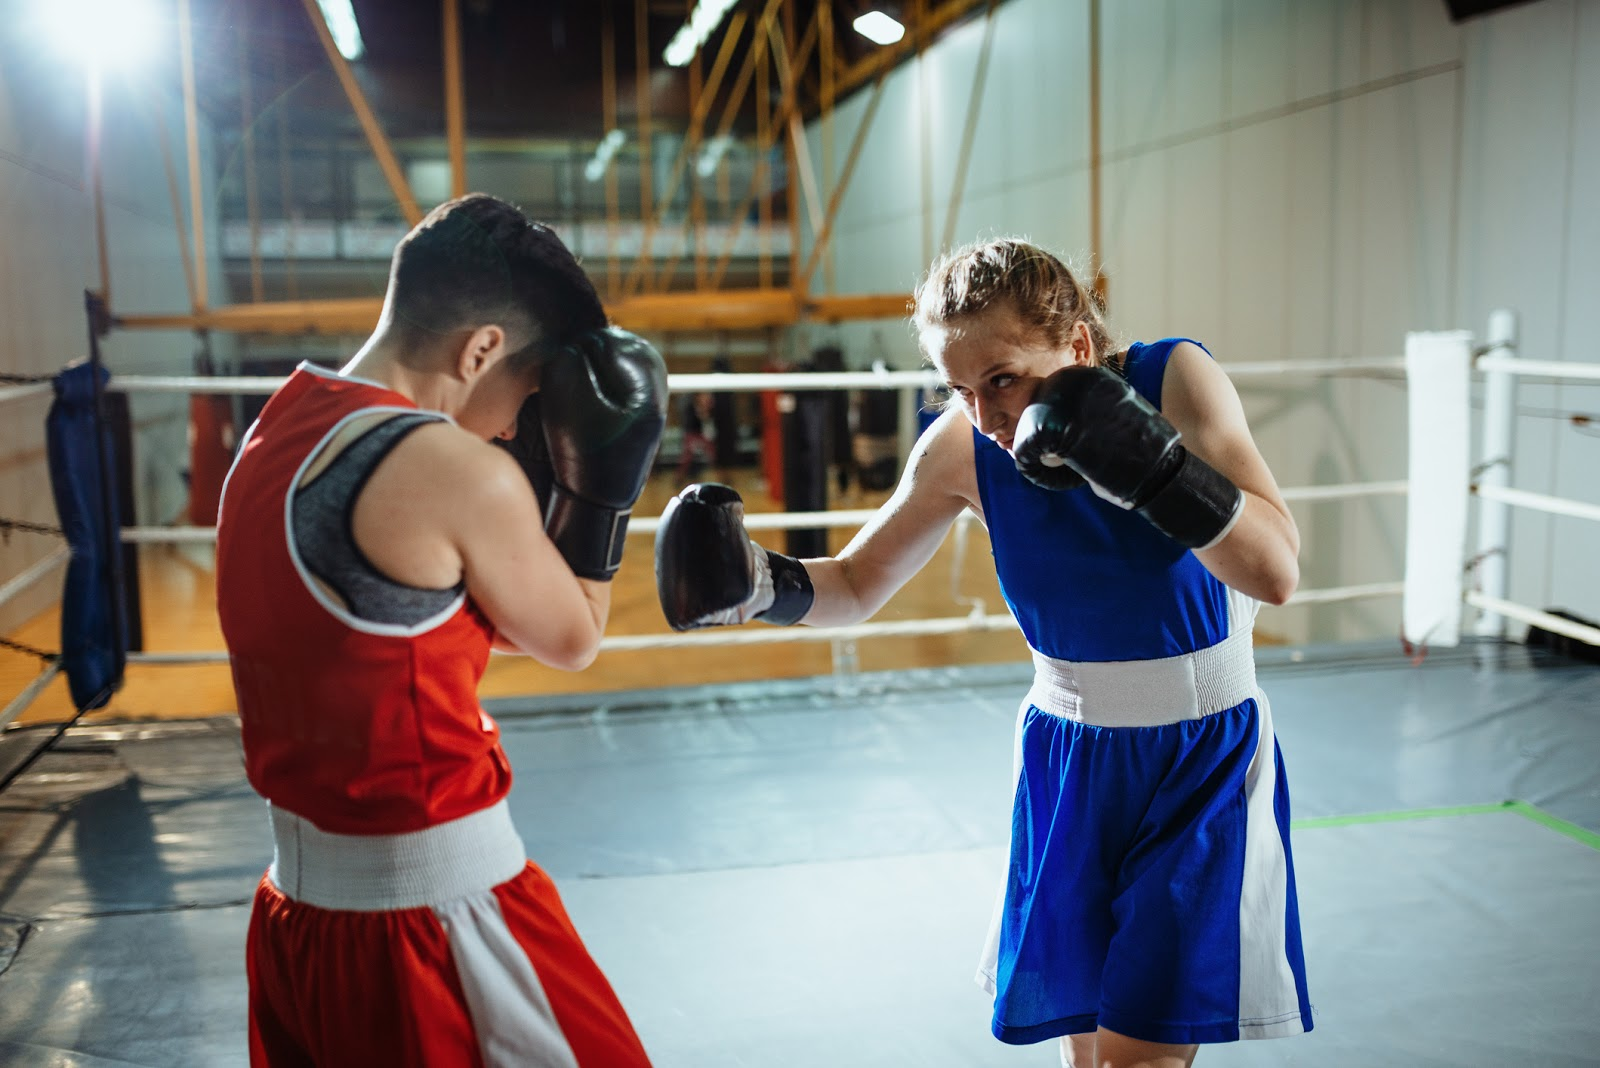 Two female boxers in the ring in action one on the offence and one with high guard.